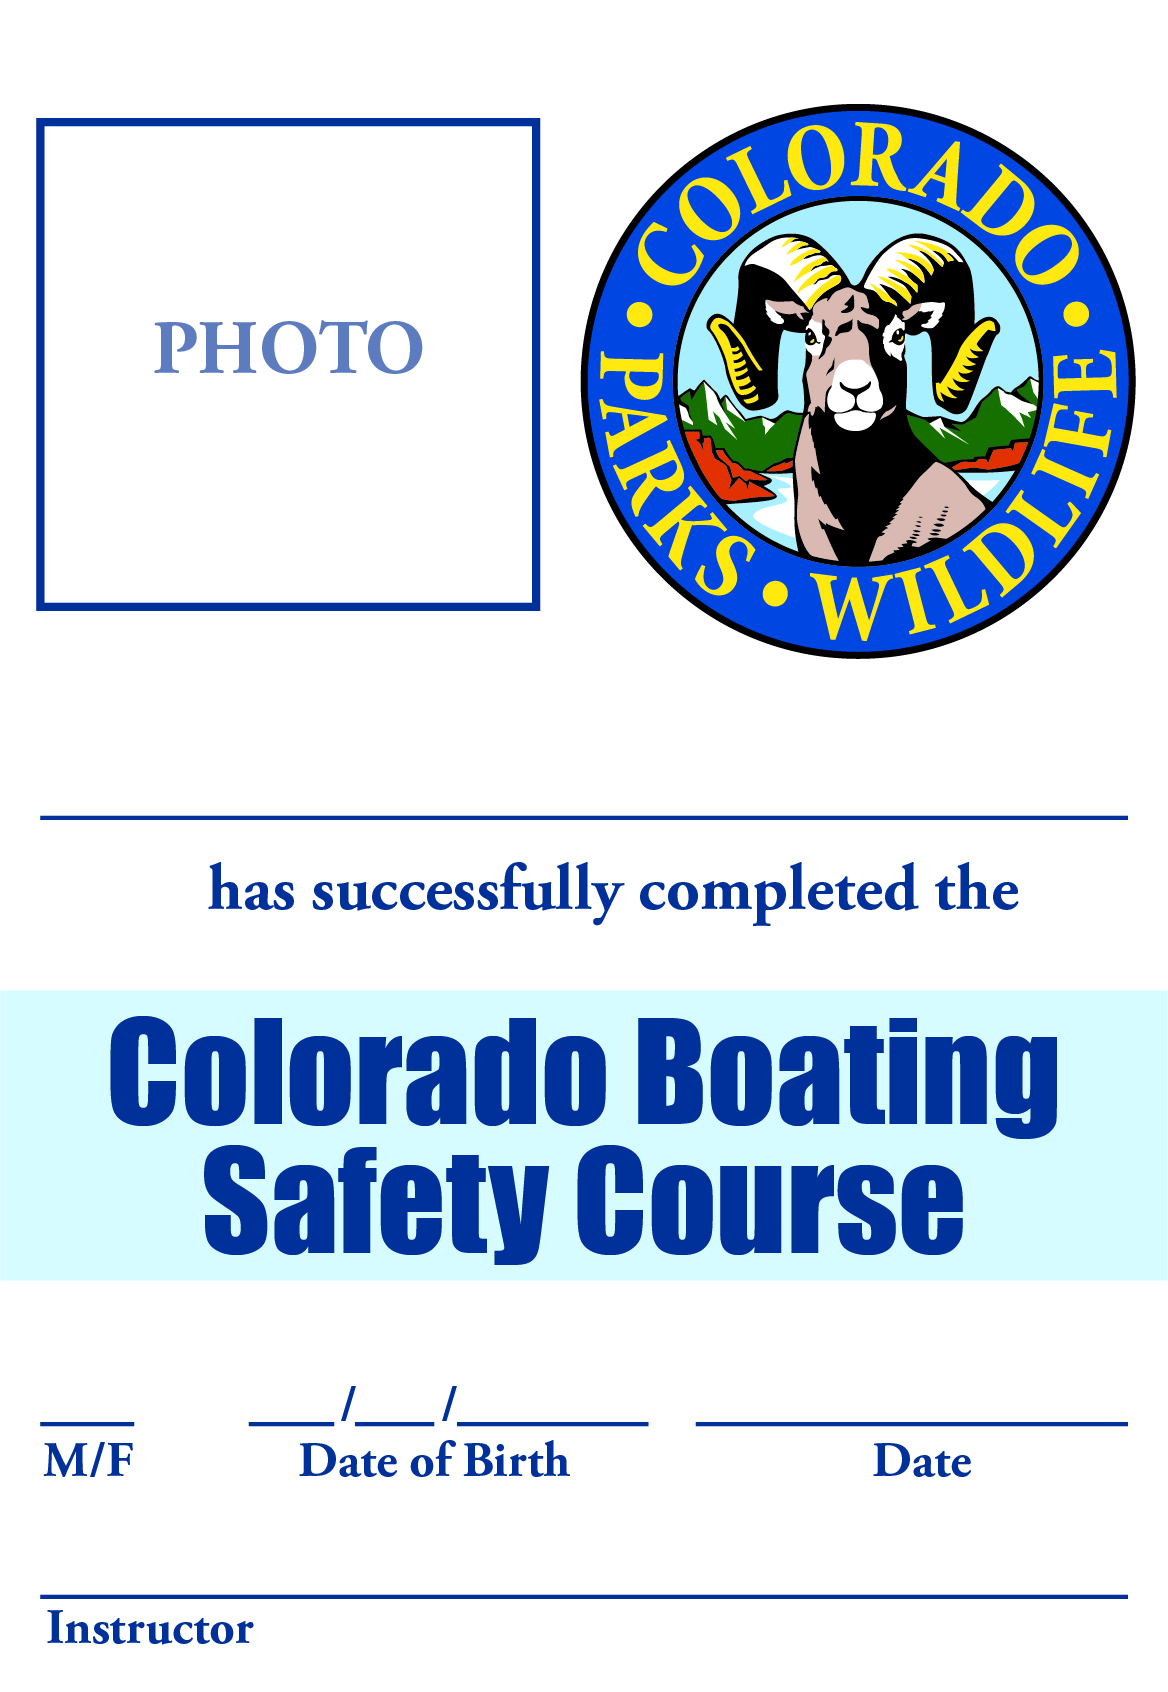 Colorado Boating Safety Certificate